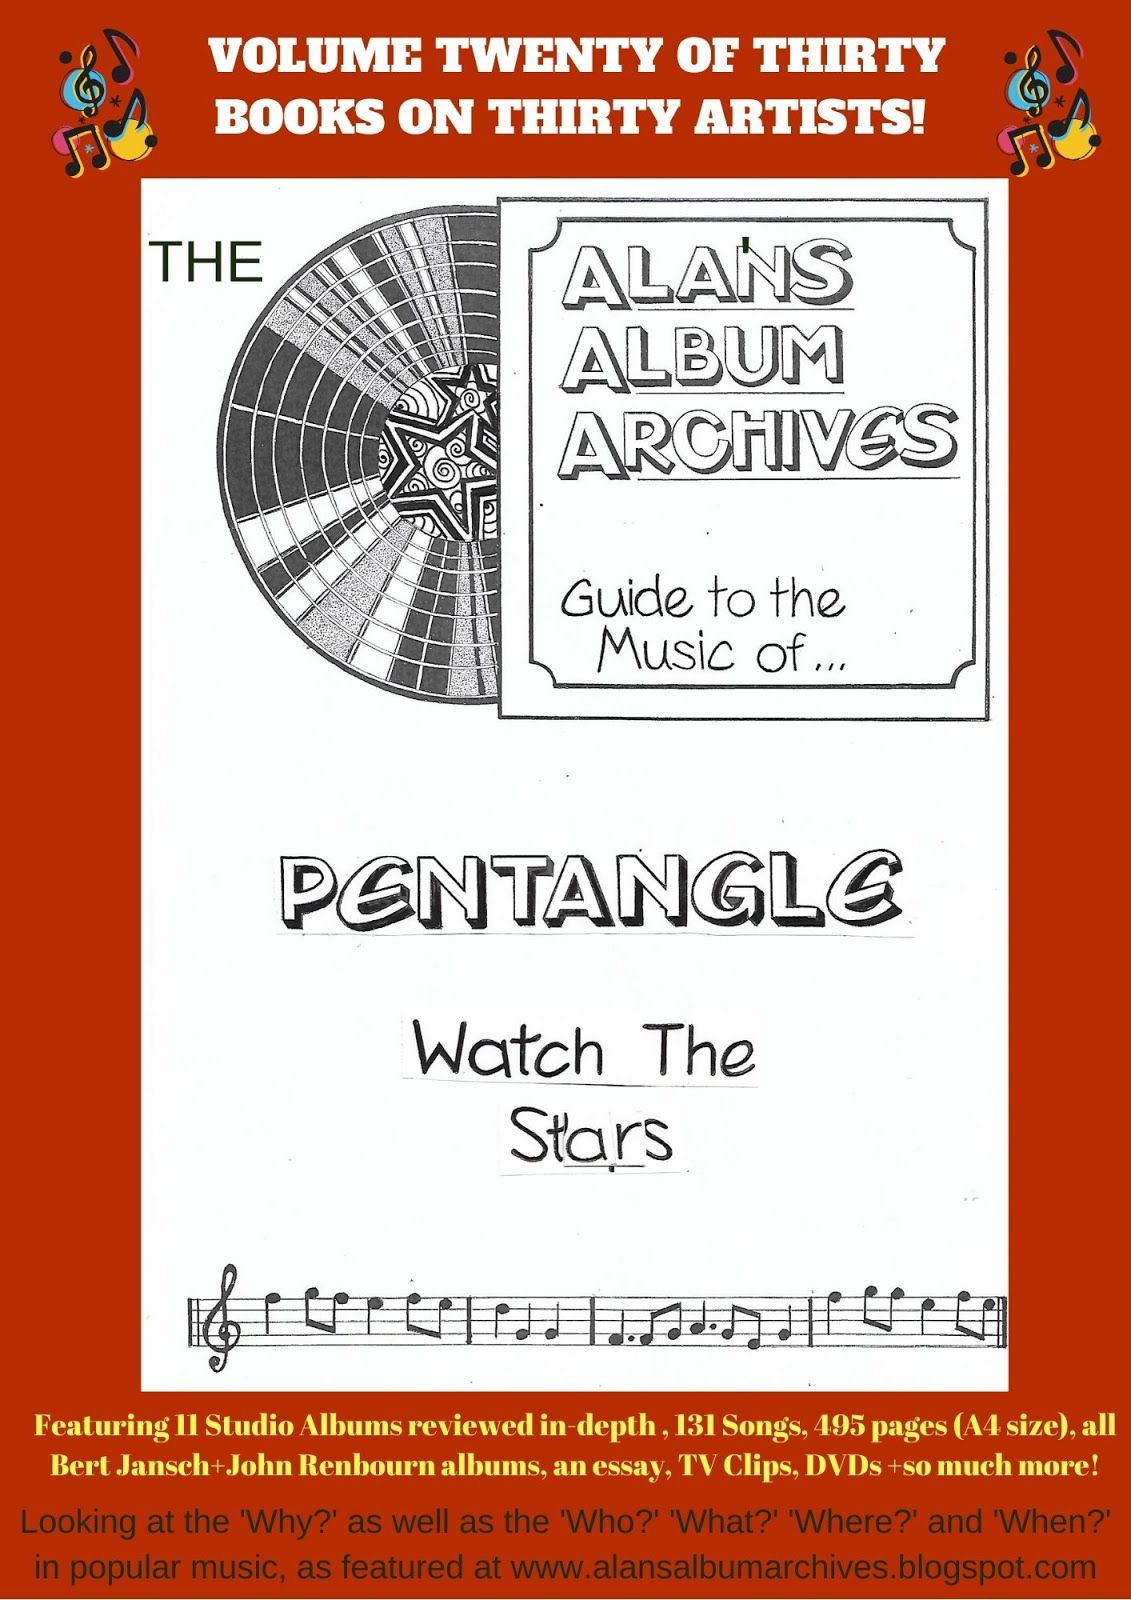 'Watch The Stars - The Alan's Album Archives Guide To The Music Of...Pentangle'